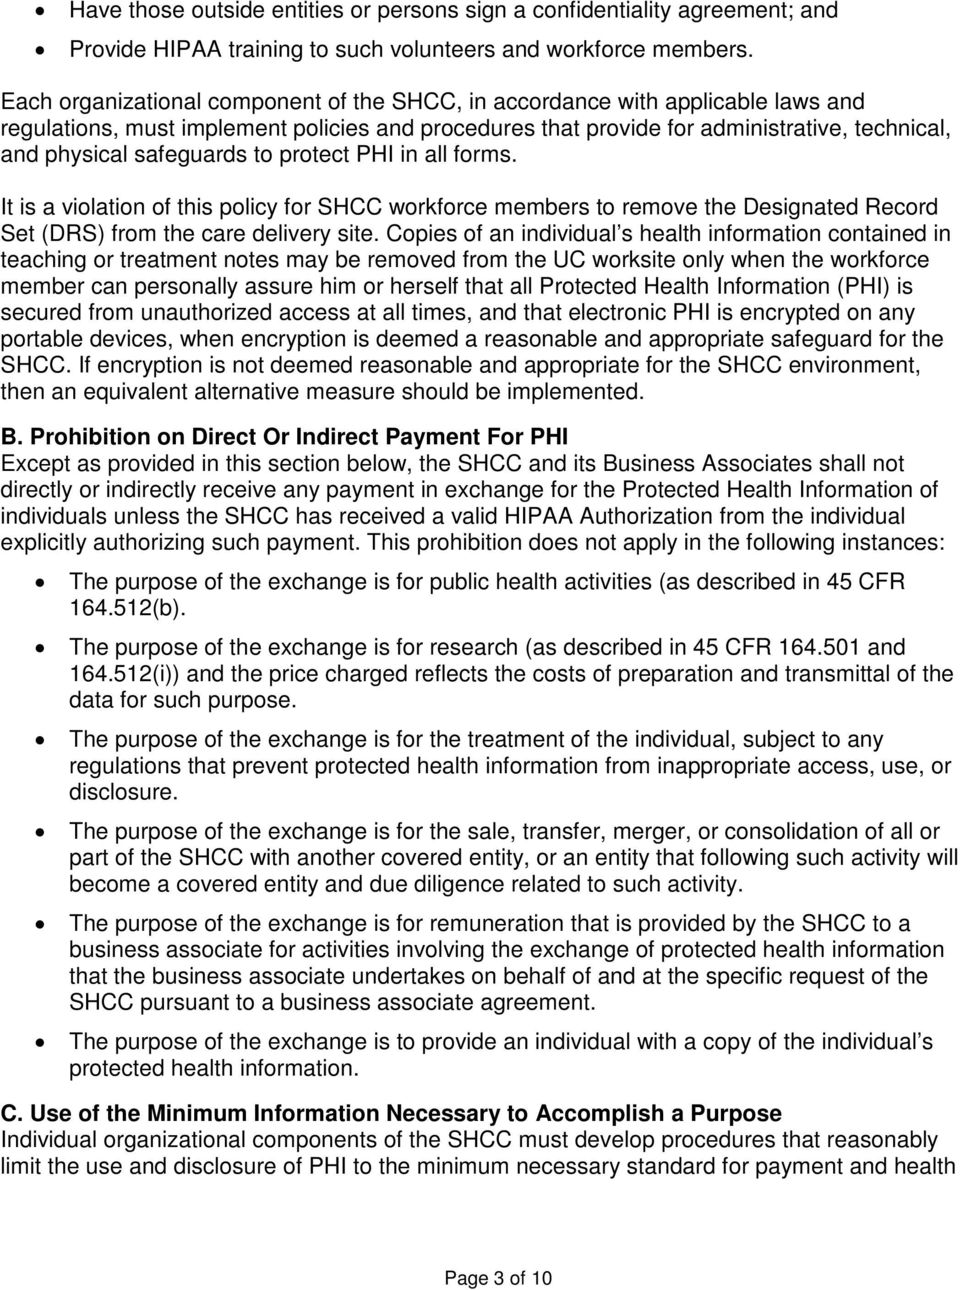 safeguards to protect PHI in all forms. It is a violation of this policy for SHCC workforce members to remove the Designated Record Set (DRS) from the care delivery site.